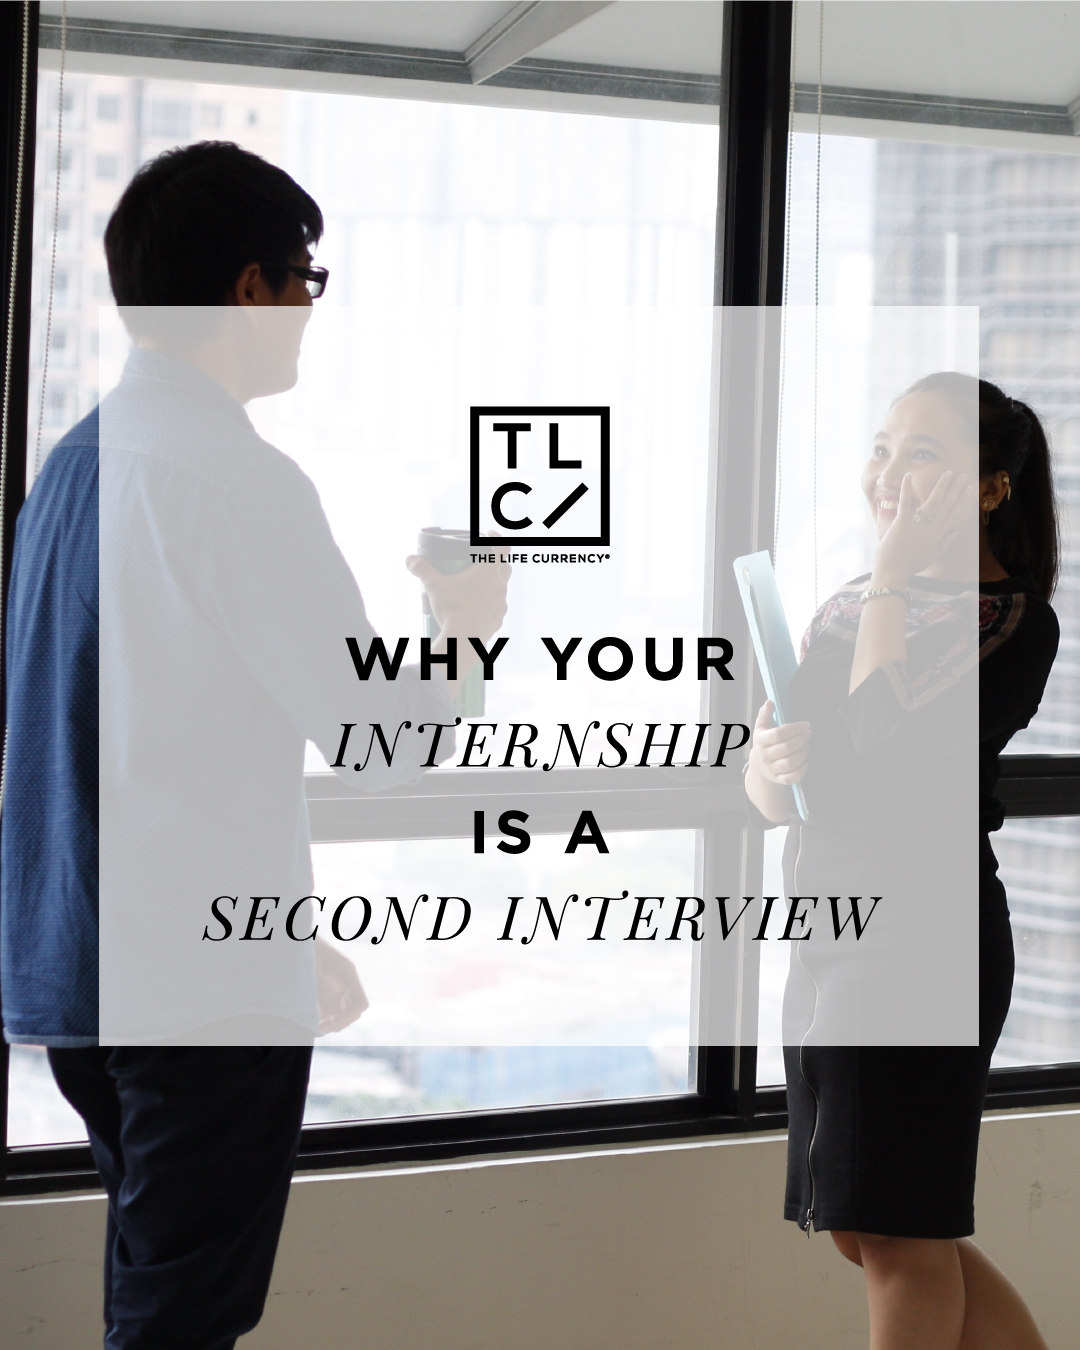 Why Your Internship is a Second Interview